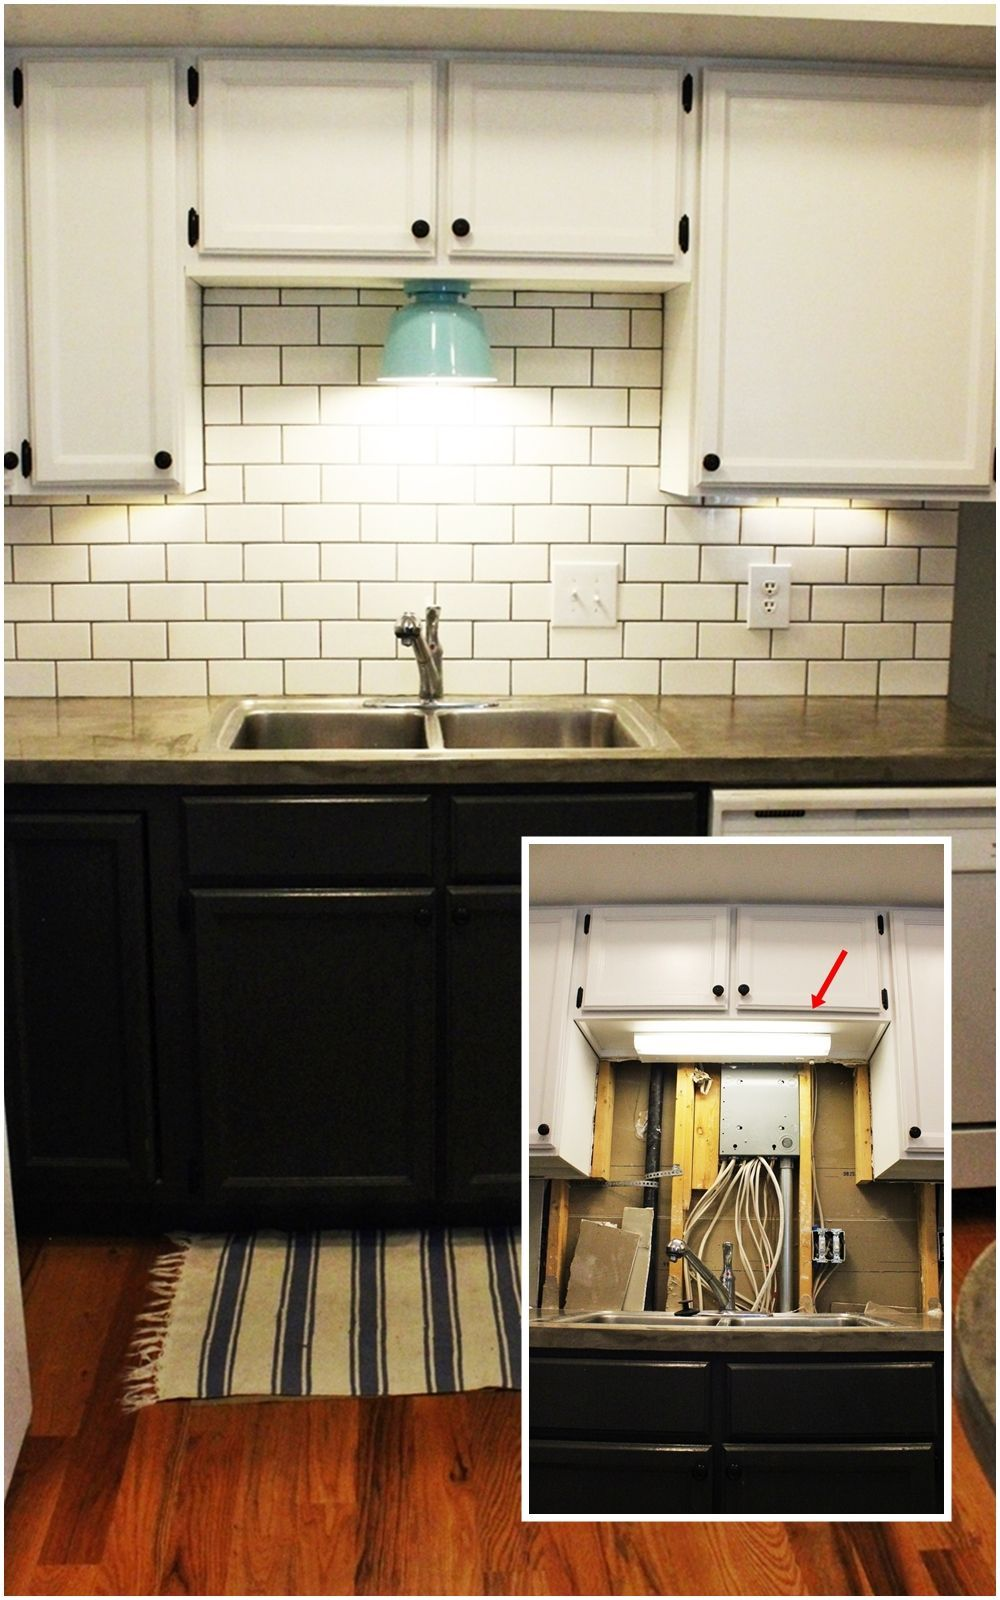 LED Under-Cabinet Lights & DIY Kitchen Lighting Upgrade: LED Under-Cabinet Lights u0026 Above-the ...